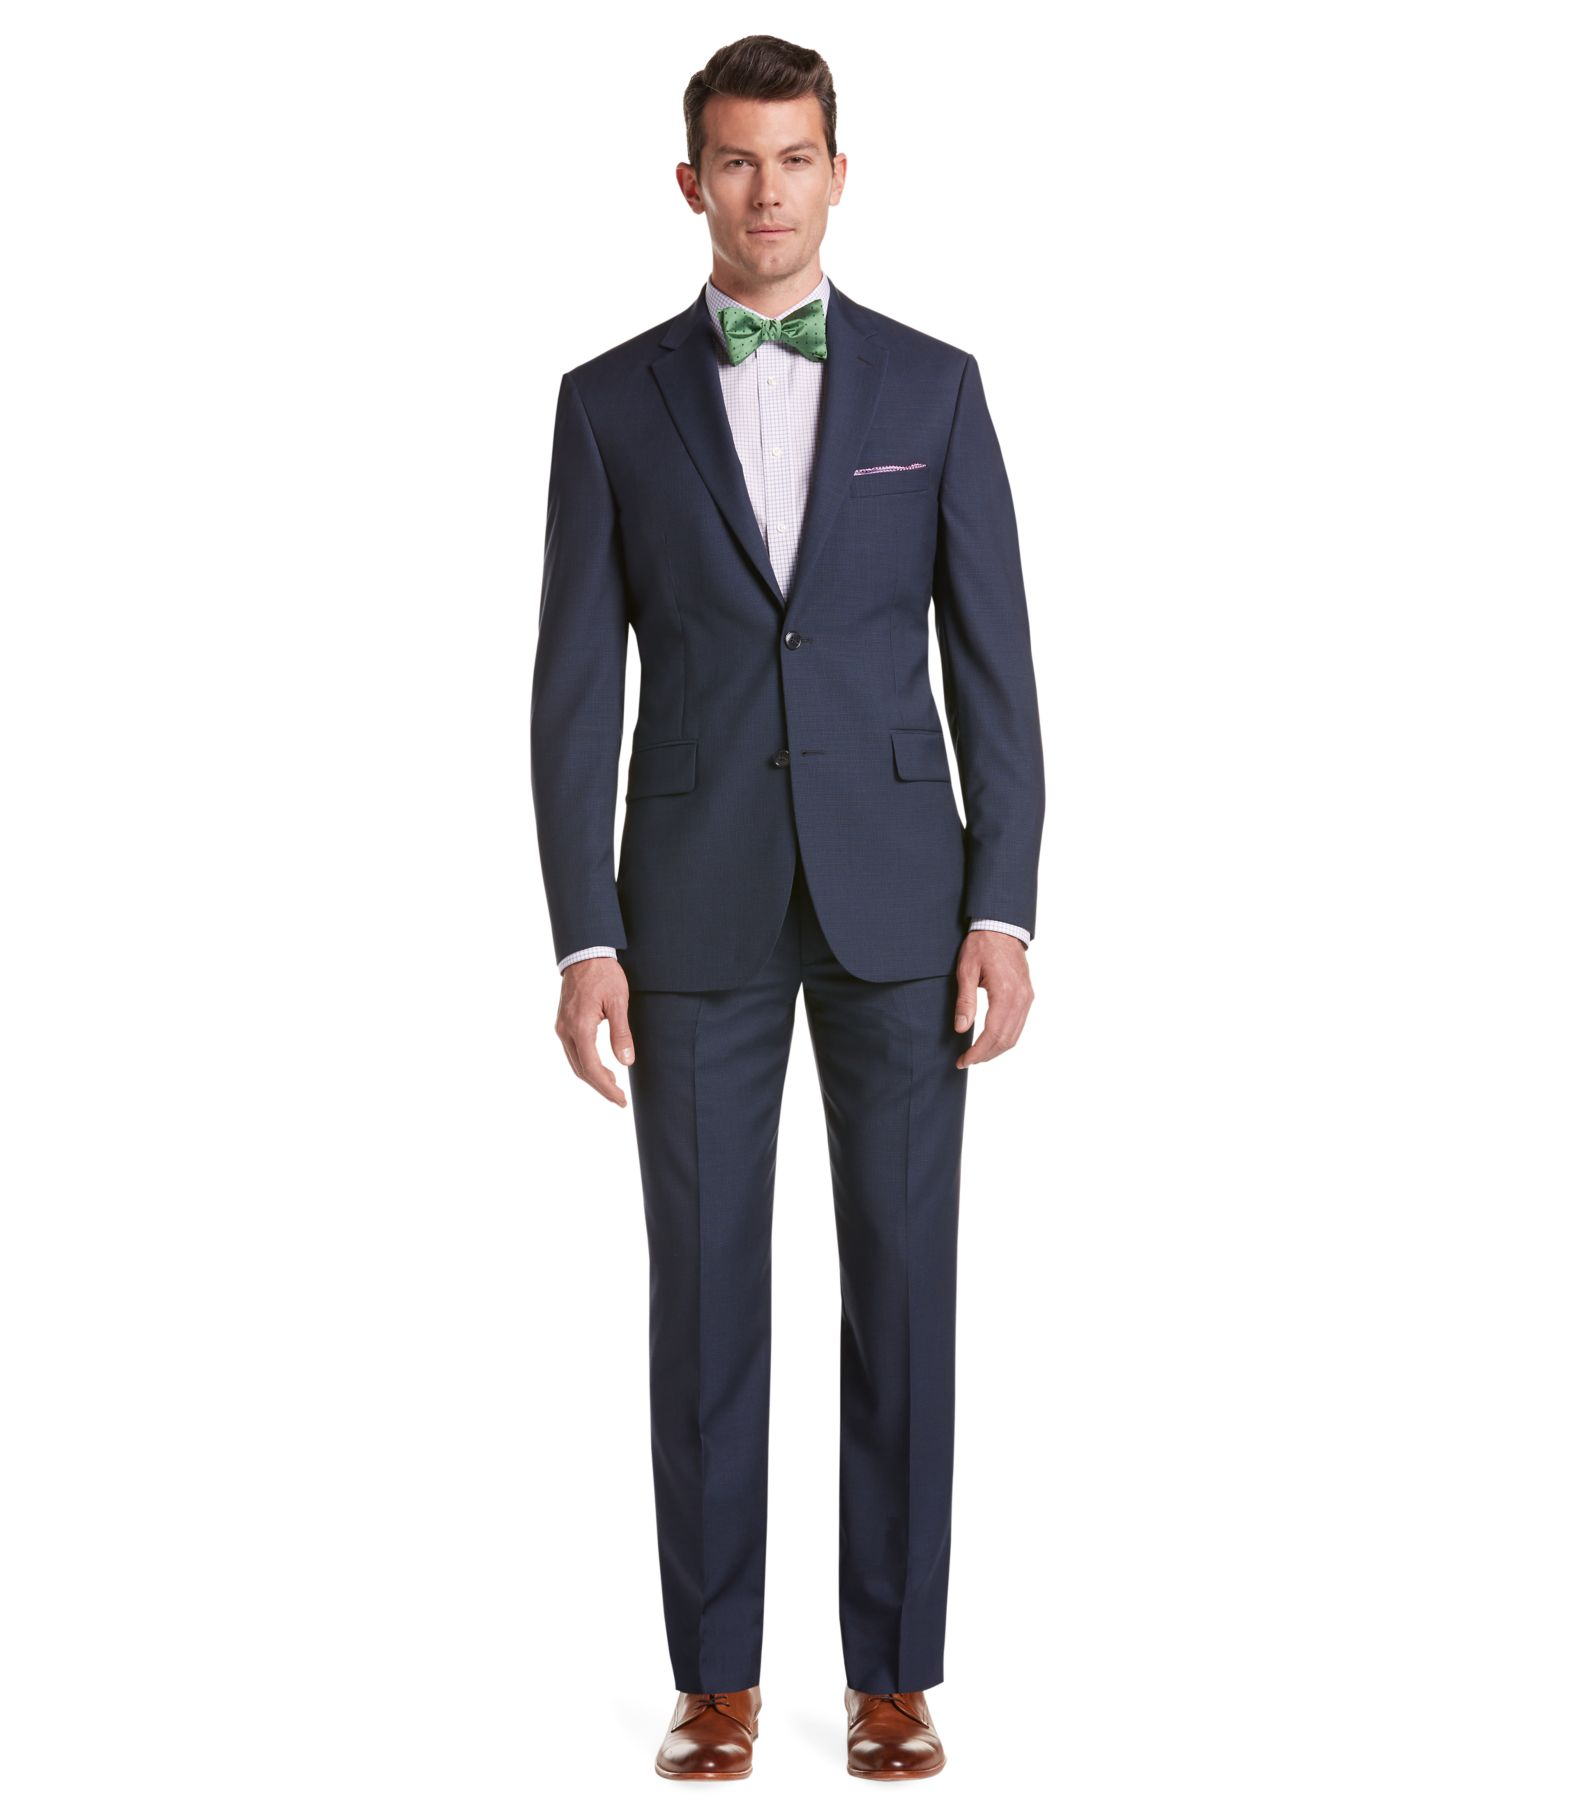 Tailored Fit Suits | Shop Custom Fitted Men's Suits | JoS. A. Bank